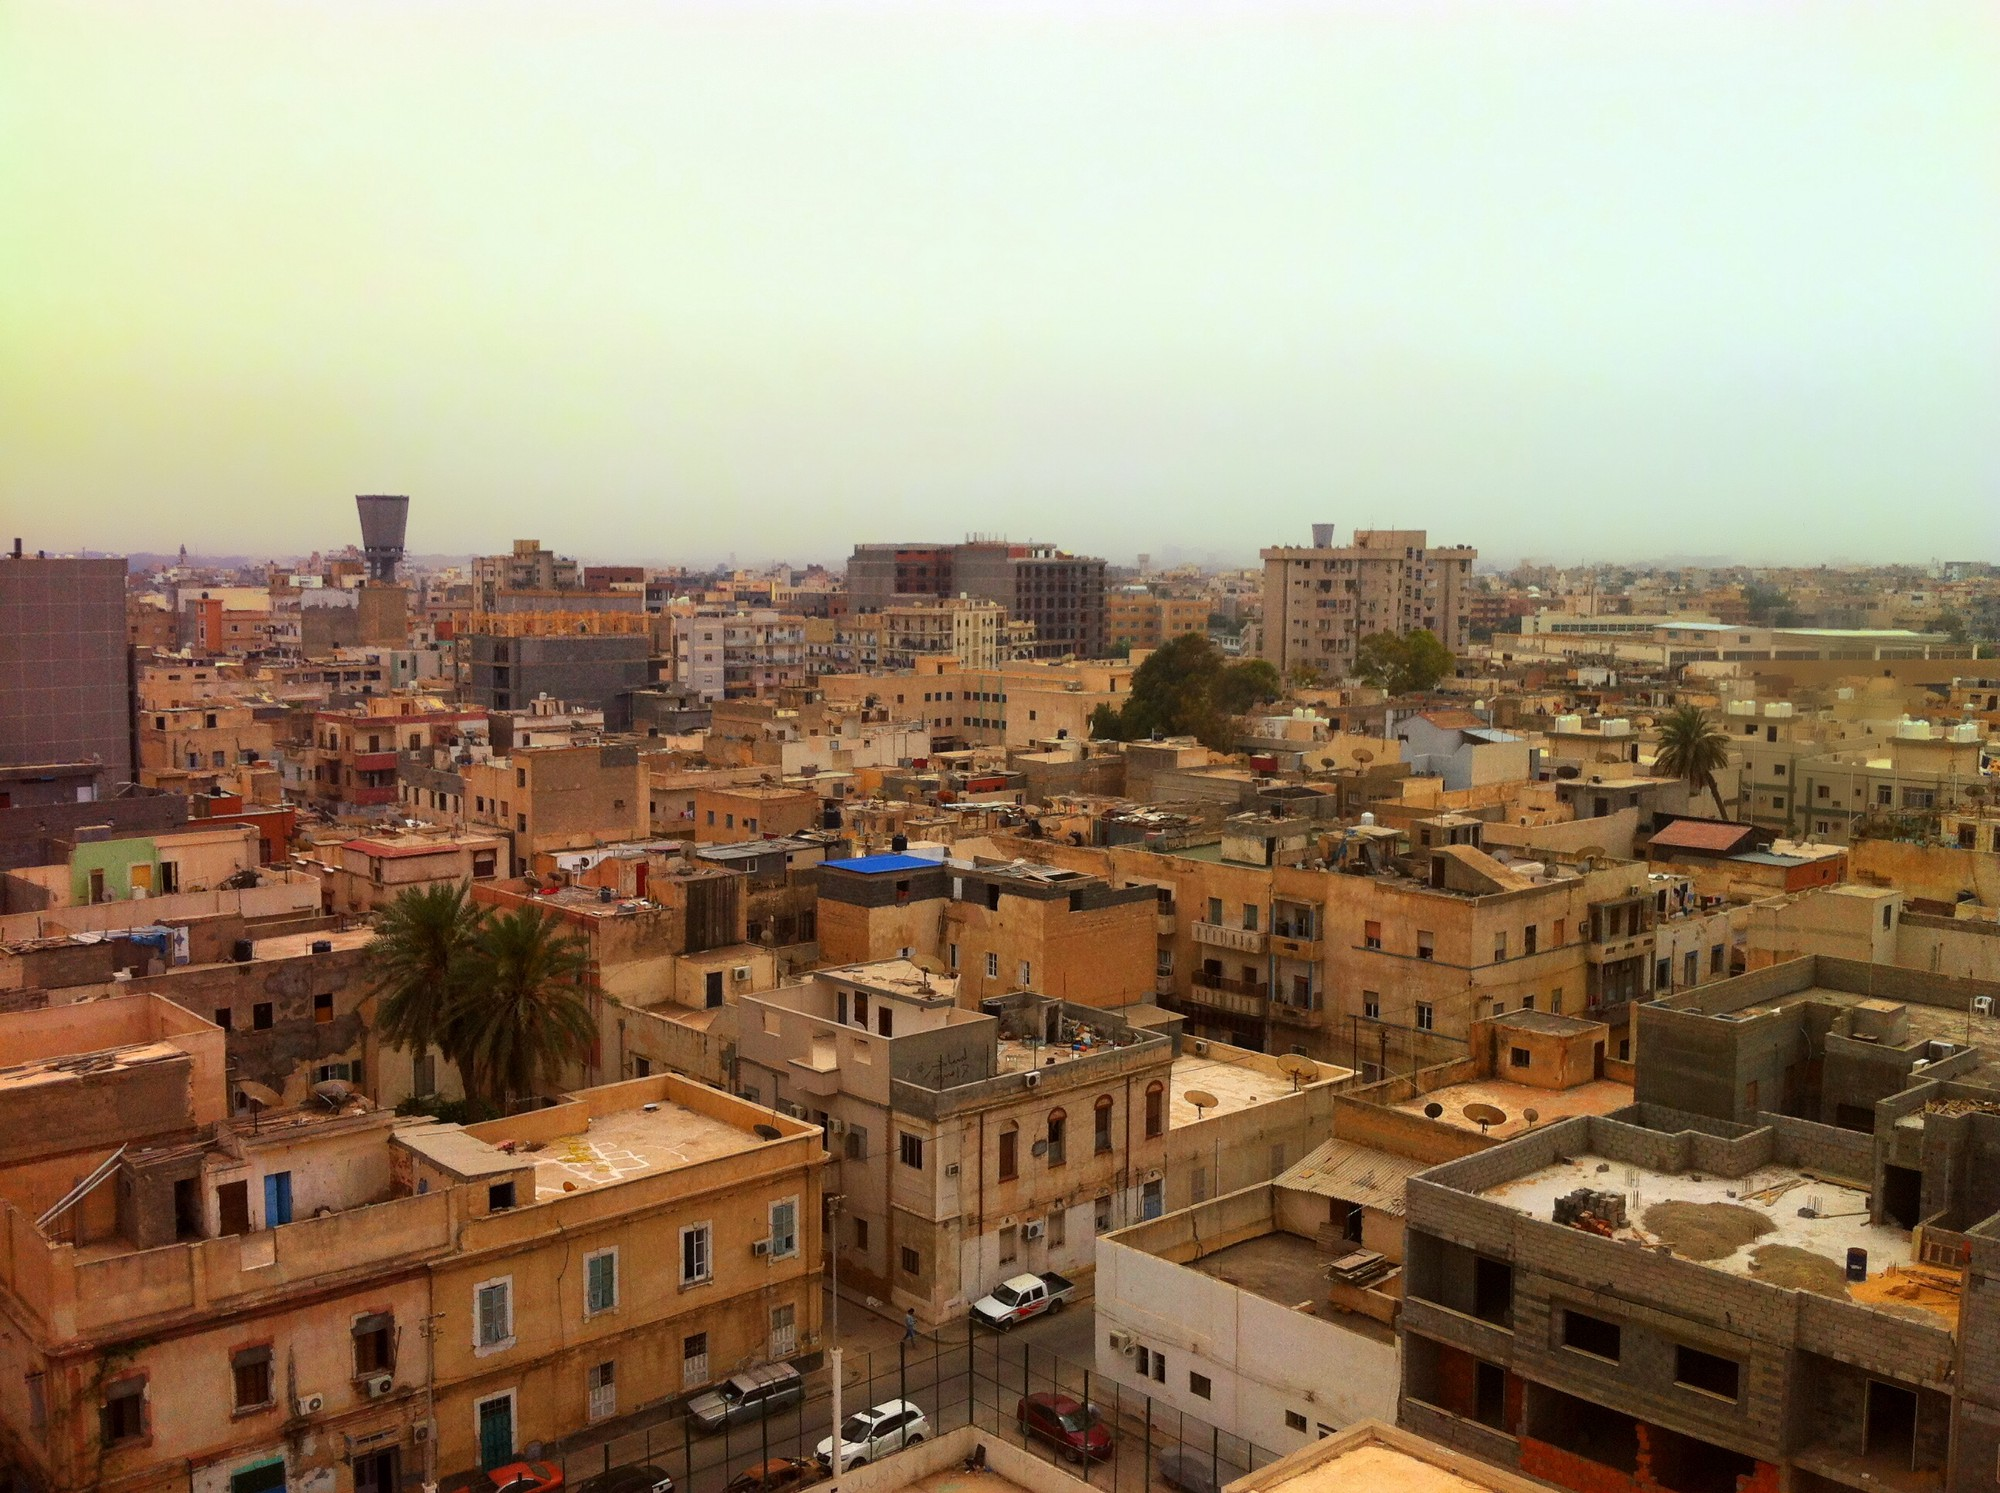 The call centre, based in Tripoli, receives thousands of calls from people across Libya. Photo: Shutterstock/ TheRunomon